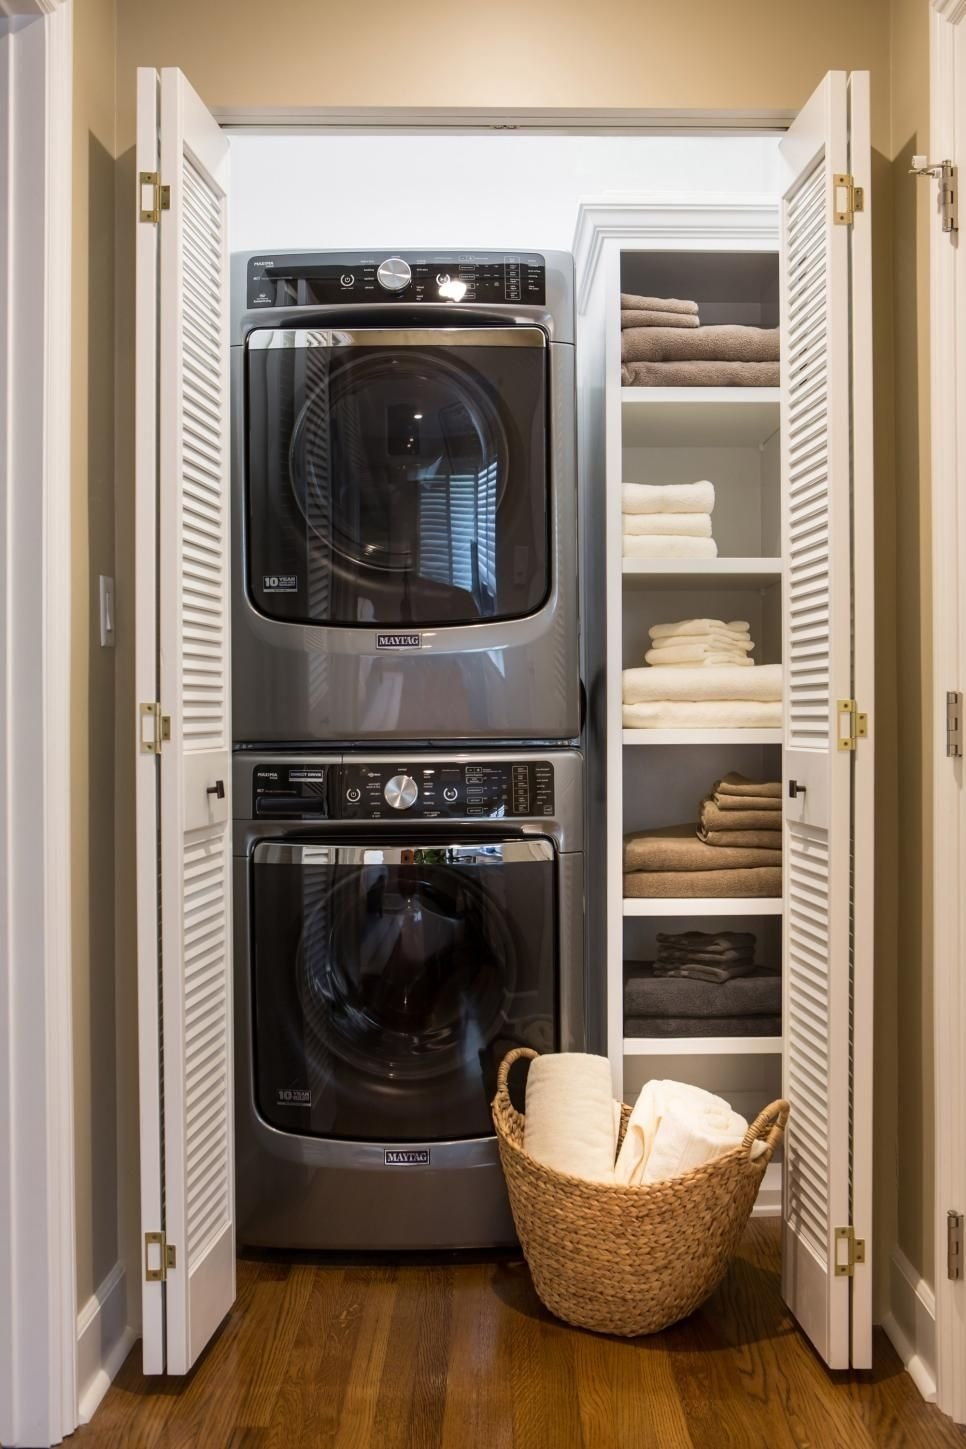 10 Best Laundry Room Ideas For Small Spaces 14 basement laundry room ideas for small space makeovers small 1 2021